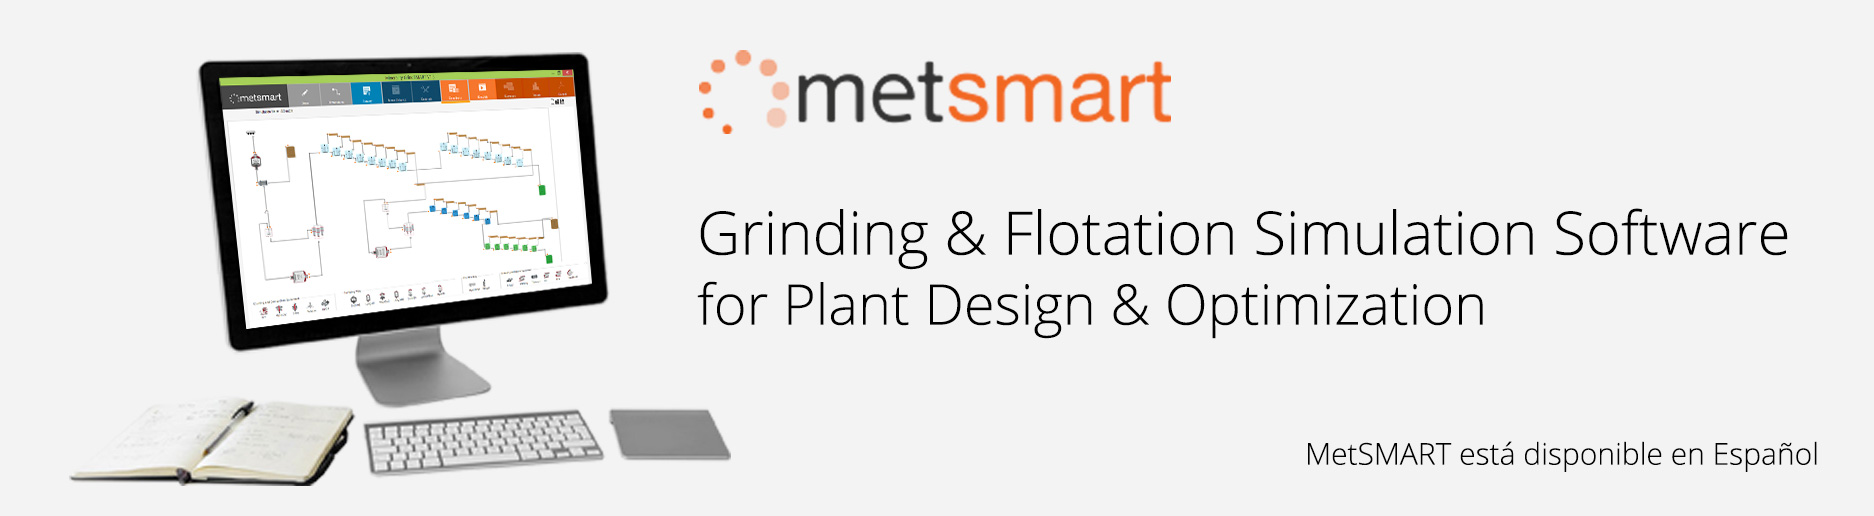 Metsmart Minerality Minerals Processing Software Training Consulting